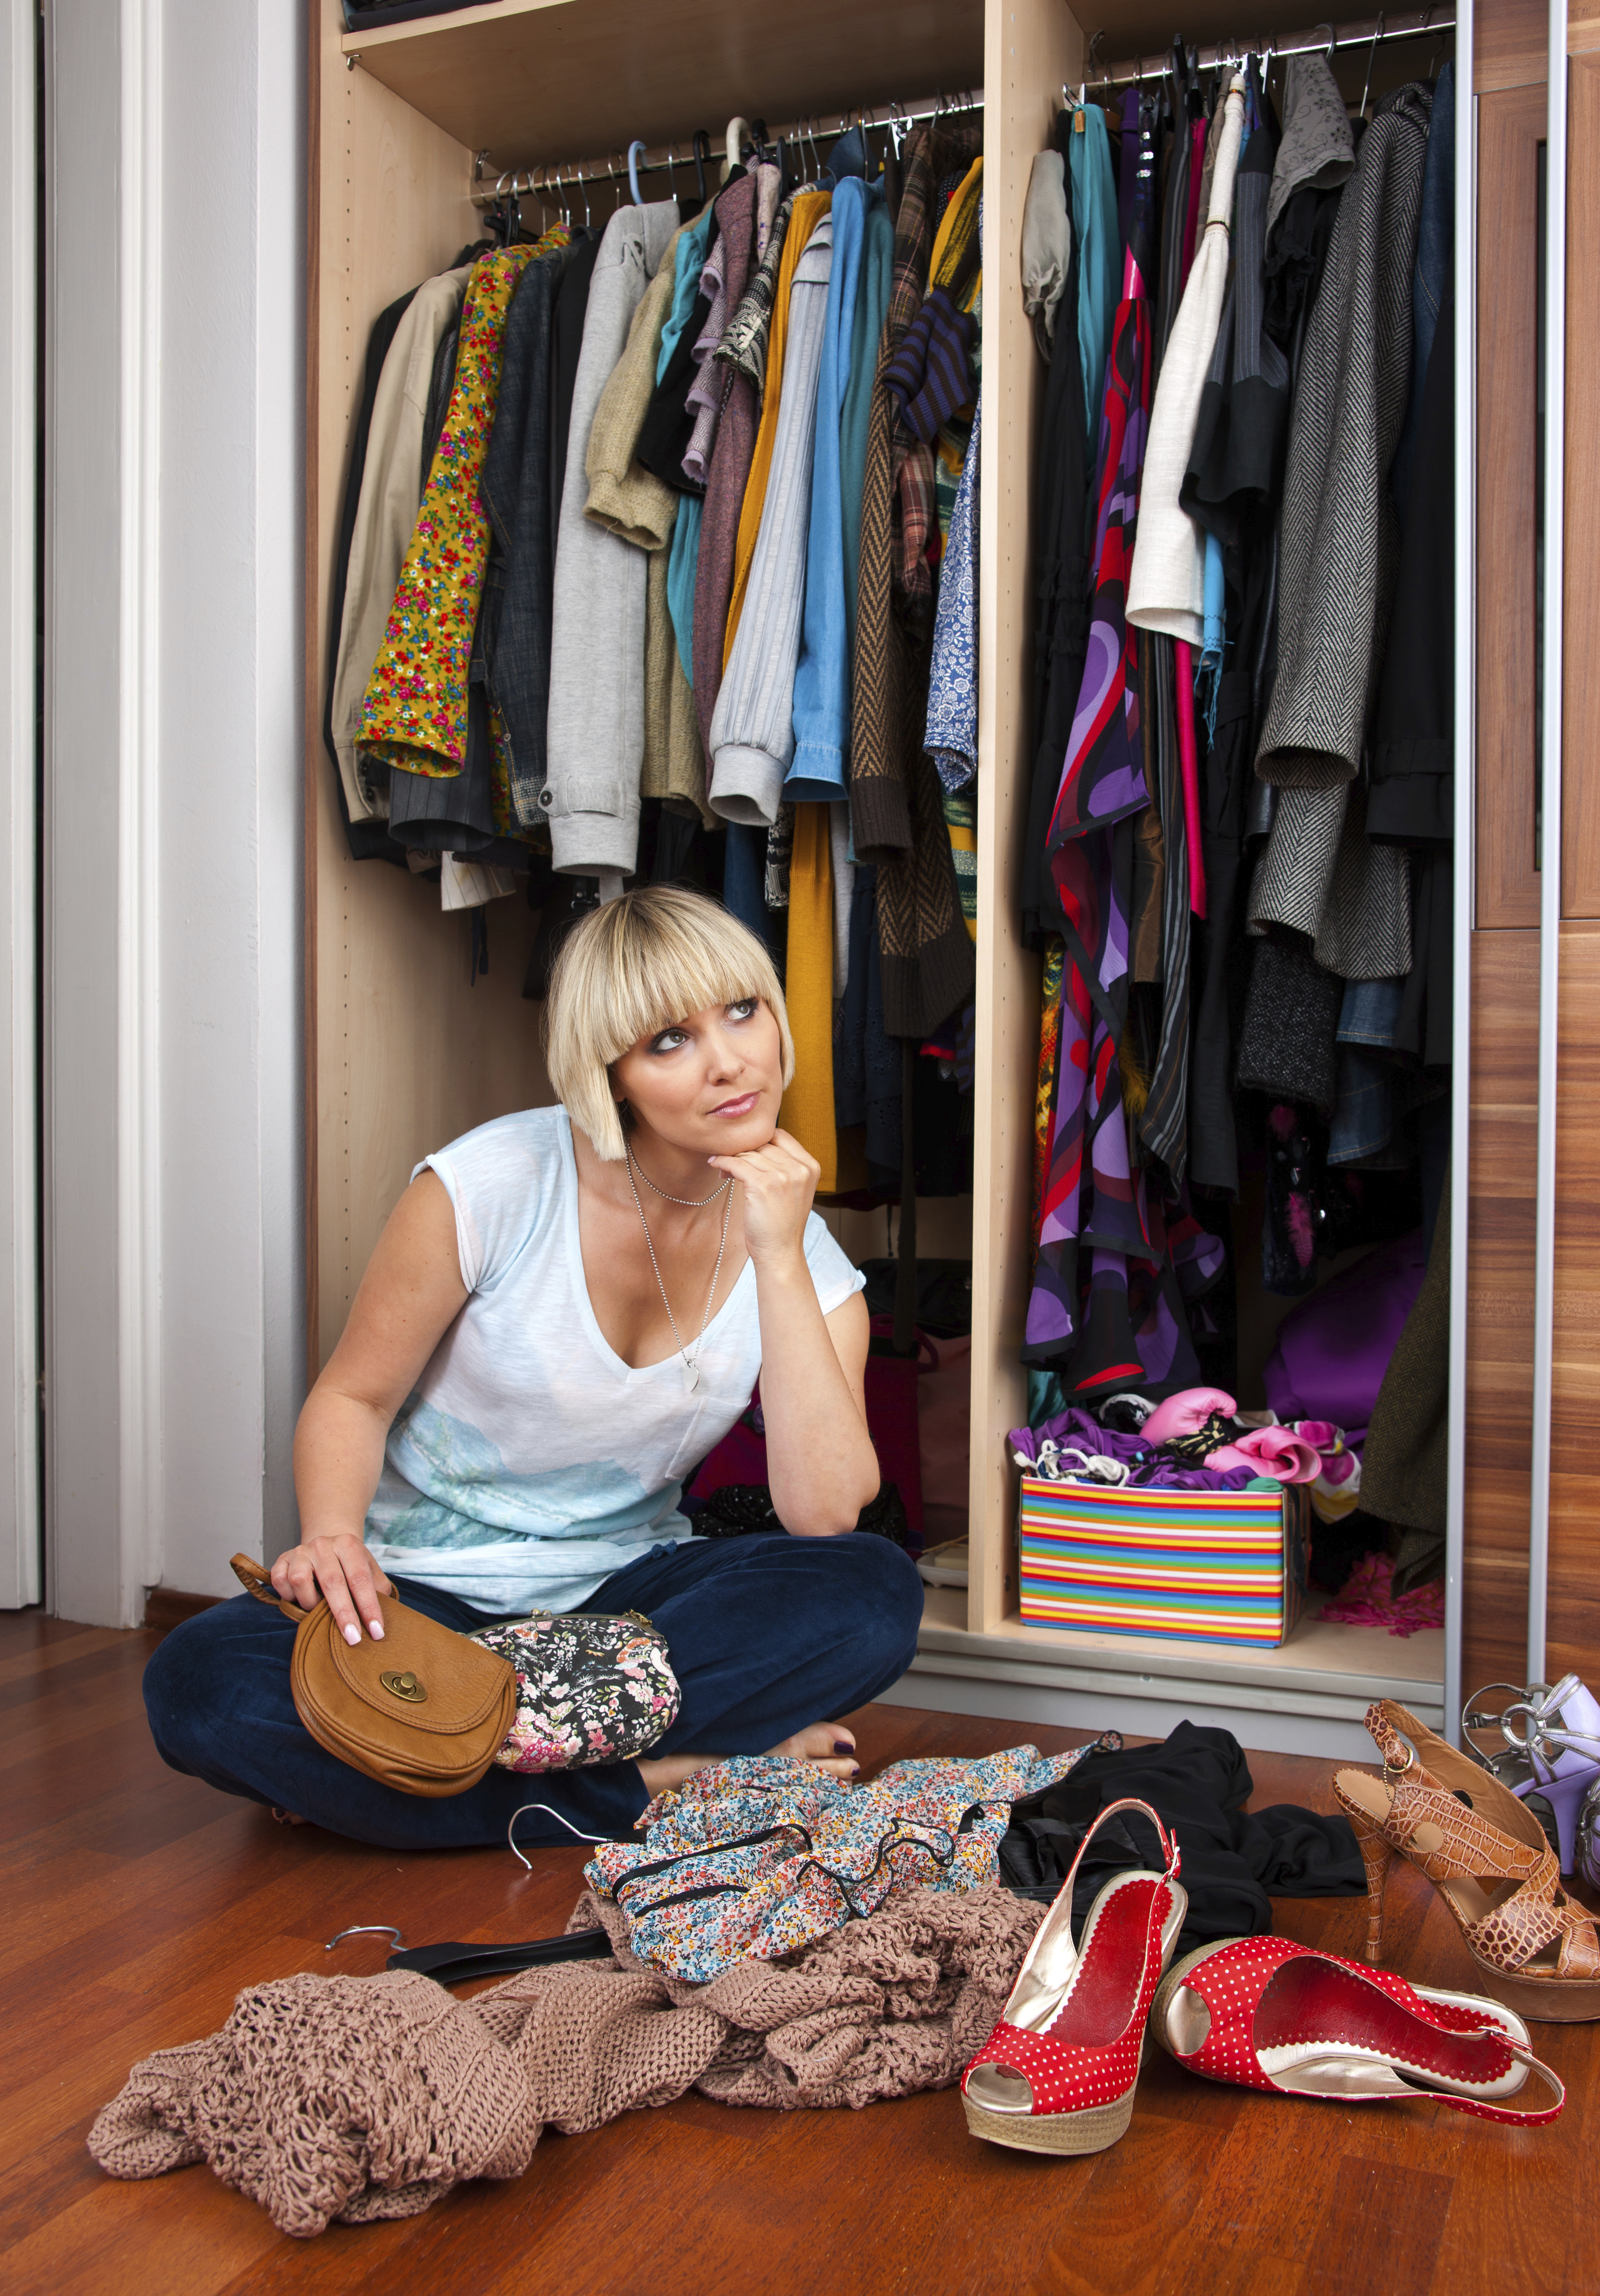 cleaning and organizing your closet like a pro | kokoa magazine